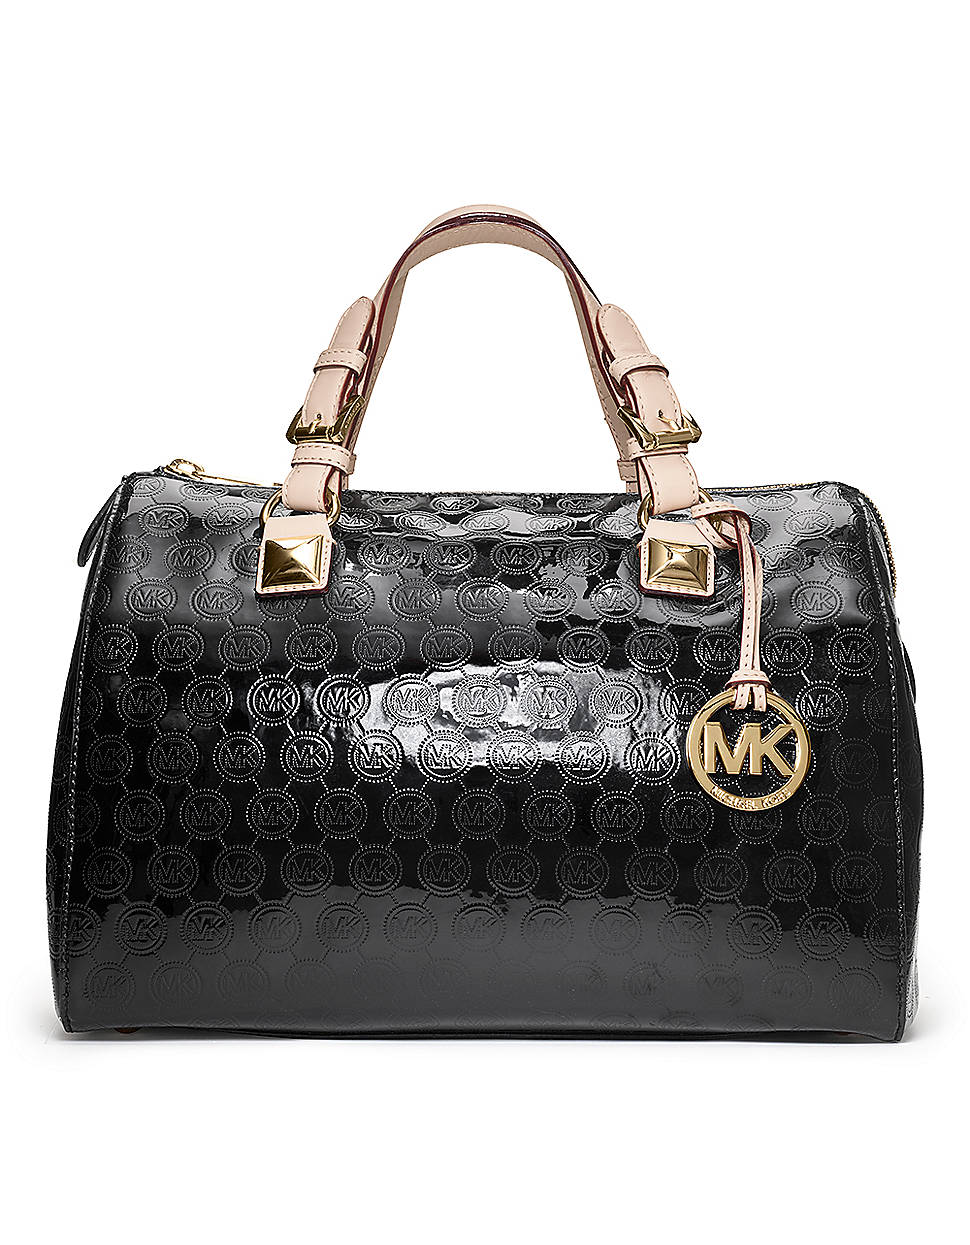 d94312fbda4852 Gallery. Previously sold at: Lord & Taylor · Women's Michael Kors Grayson  ...